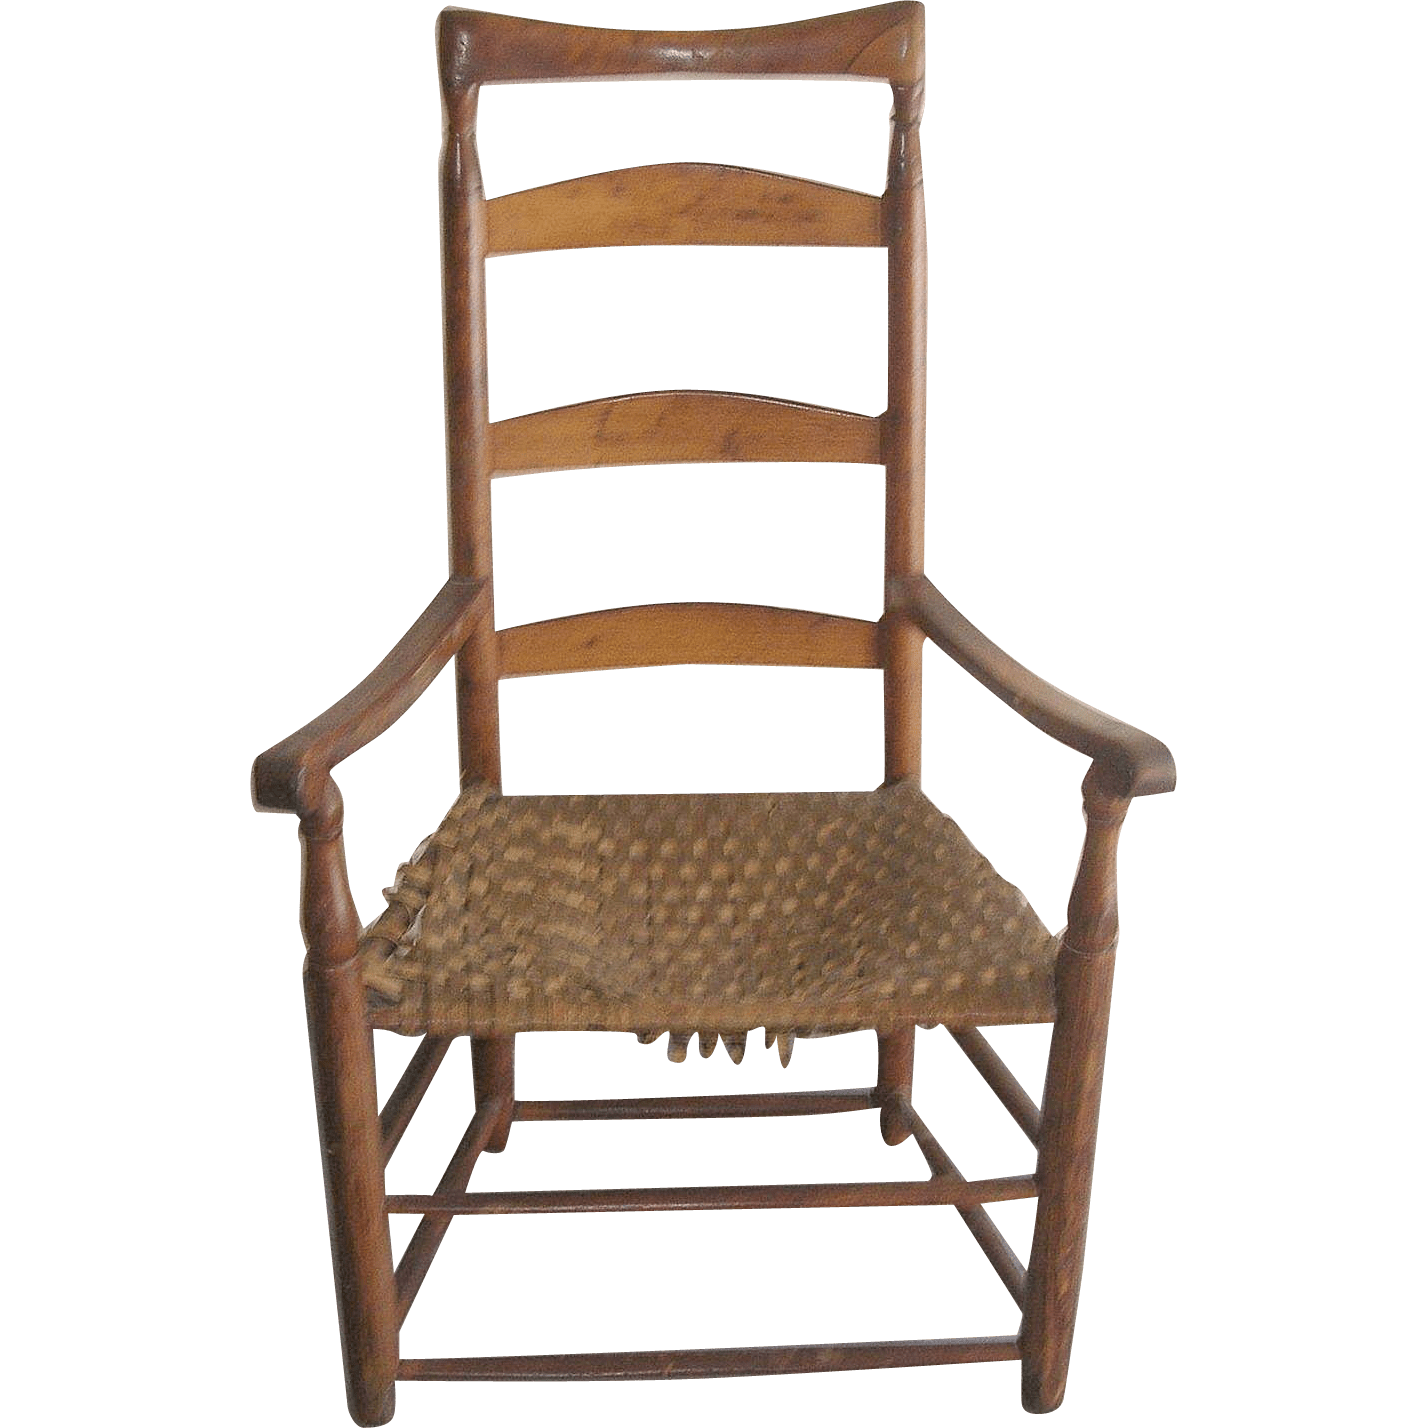 Antique Ladder Back Chair 1790s from robbiaantique on